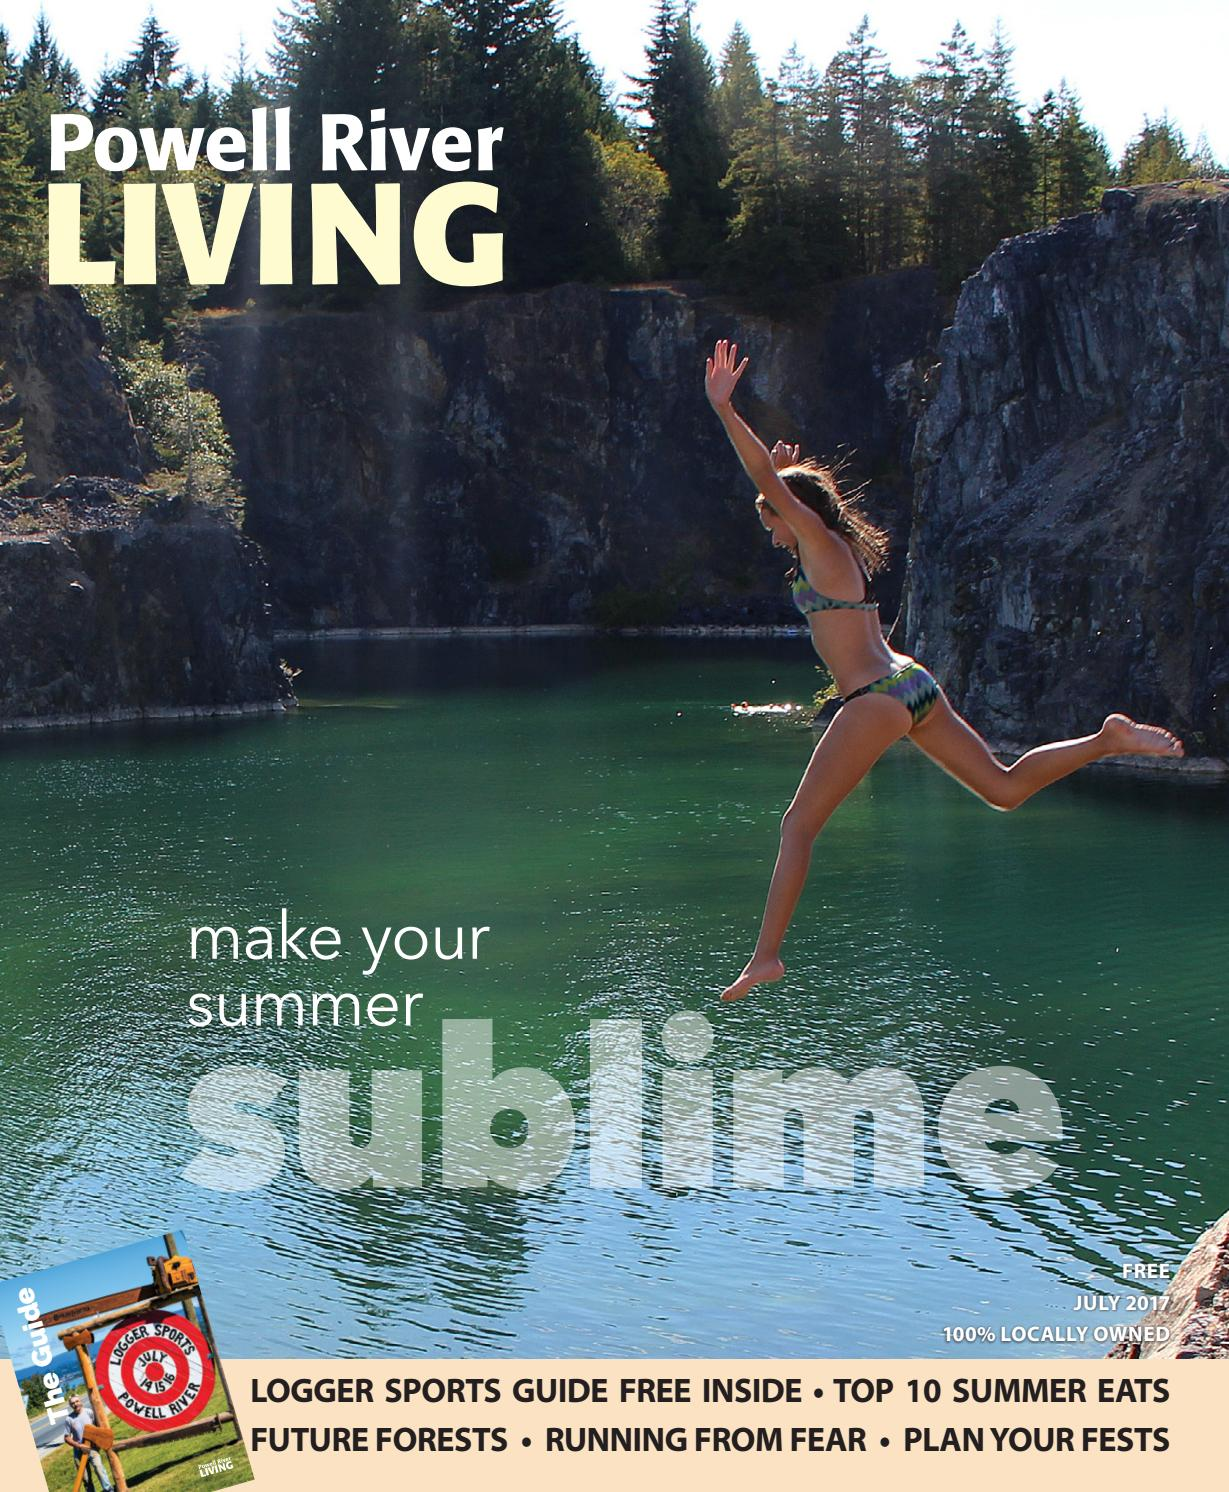 Powell River Living - July 2014 by Sean Percy - issuu